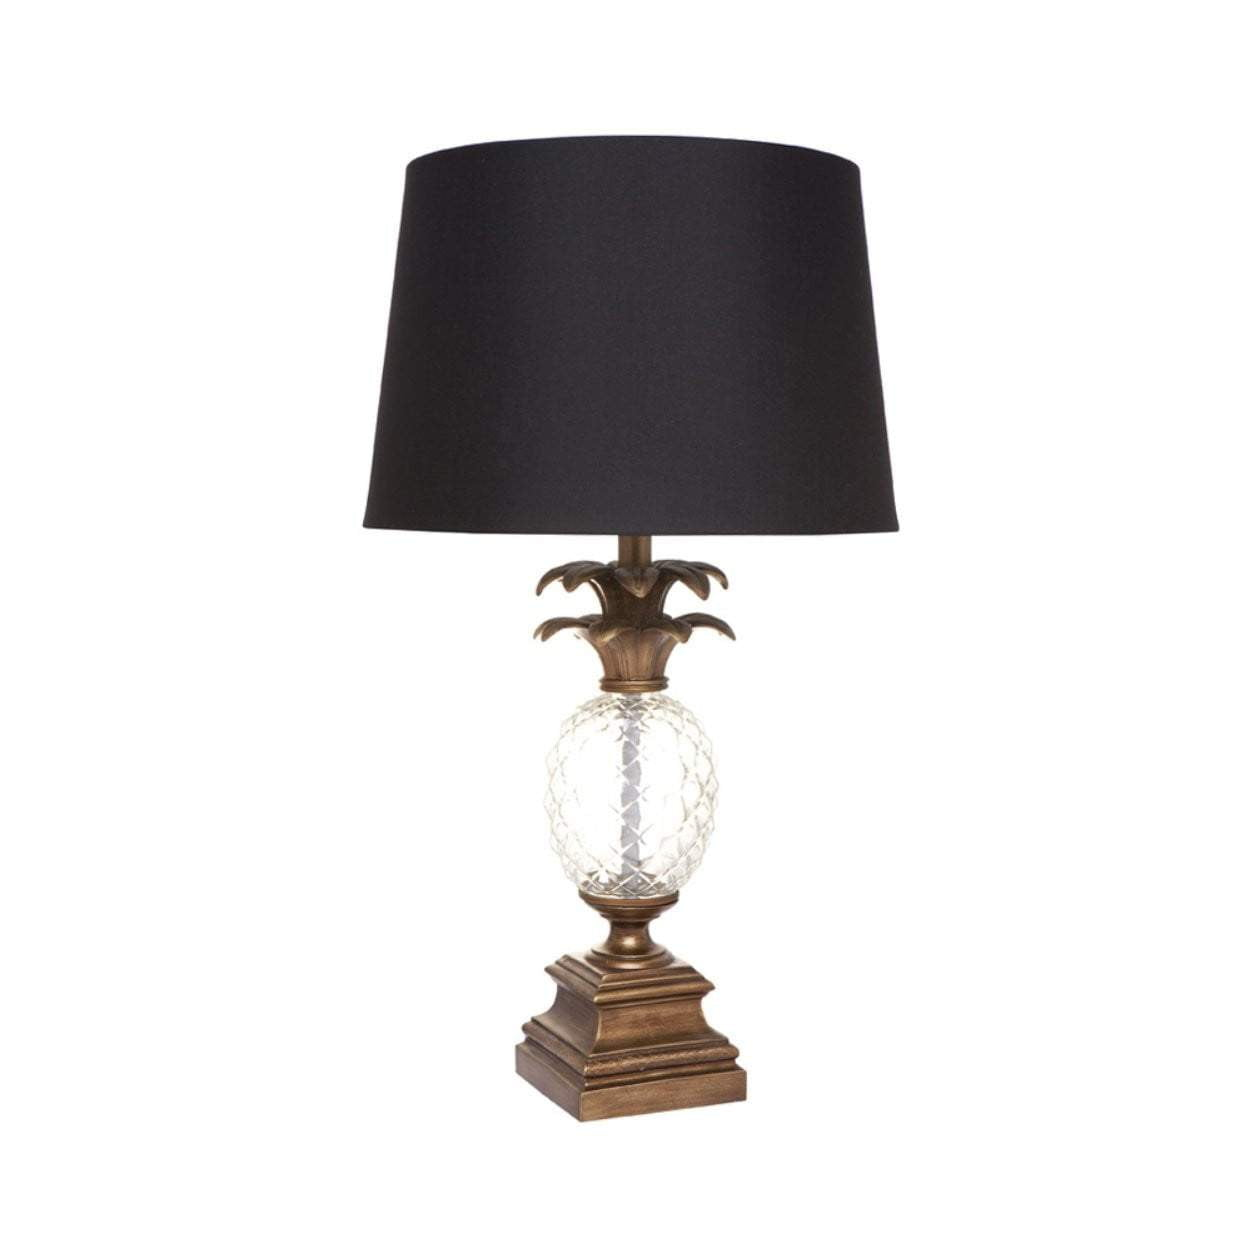 Langley Gold Table Lamp - Luxury Lamps